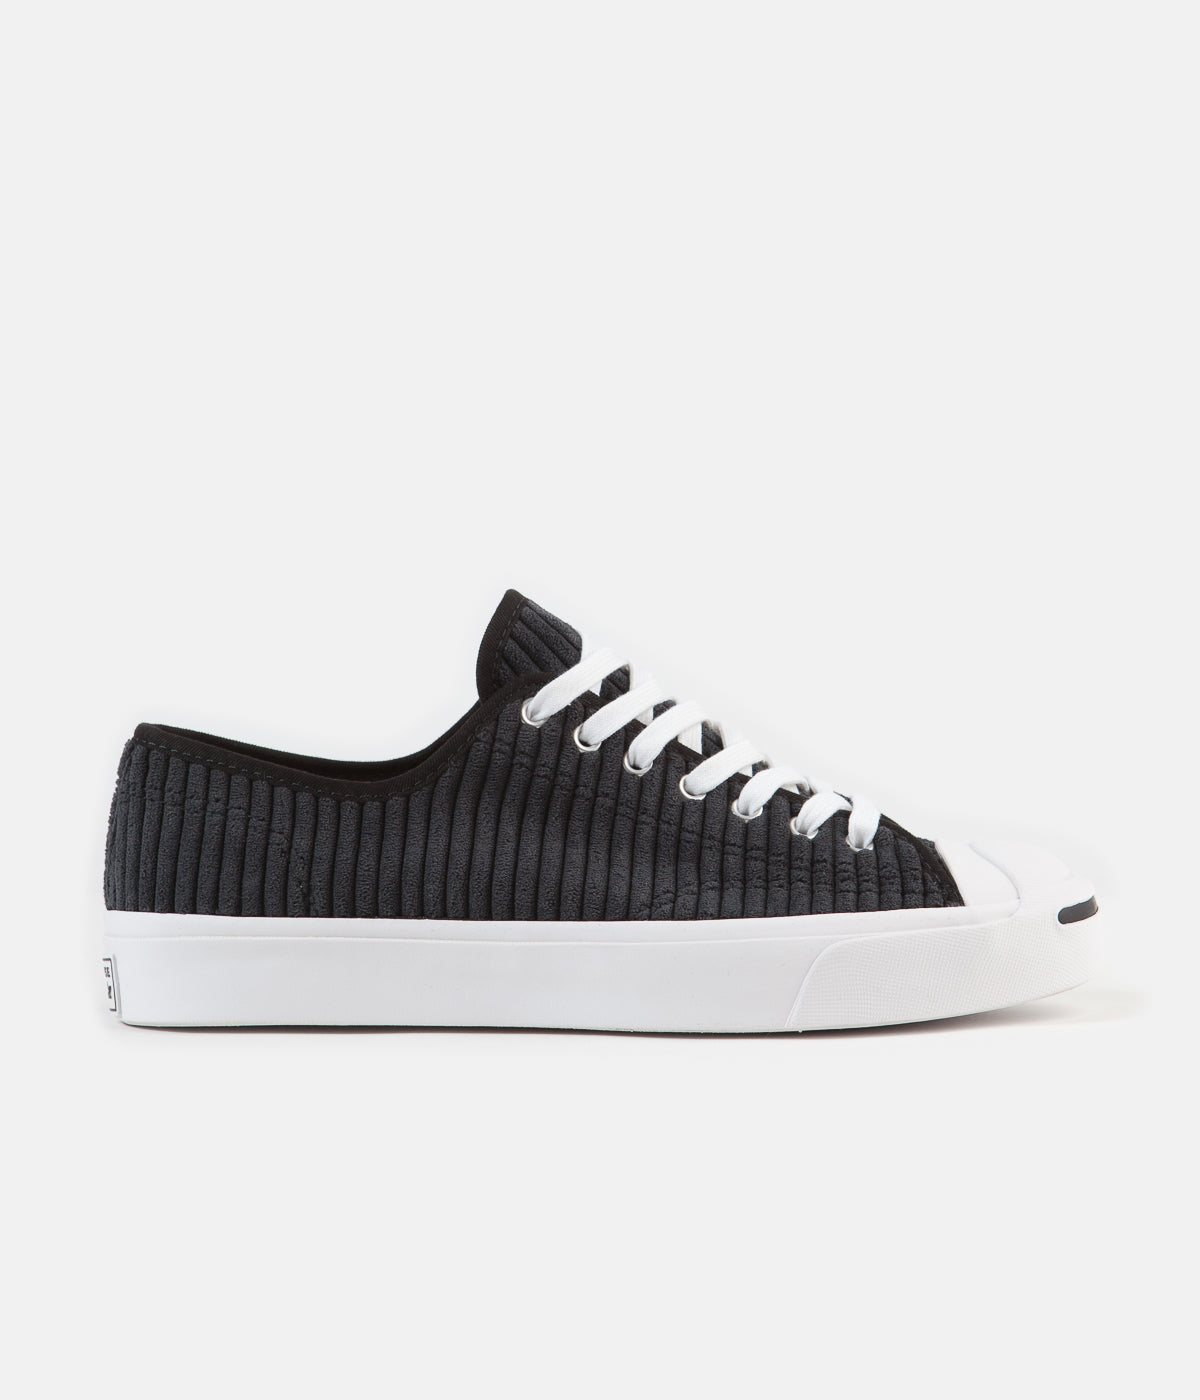 Converse JP Ox Wide Wale Cord Shoes - Black / White / Black